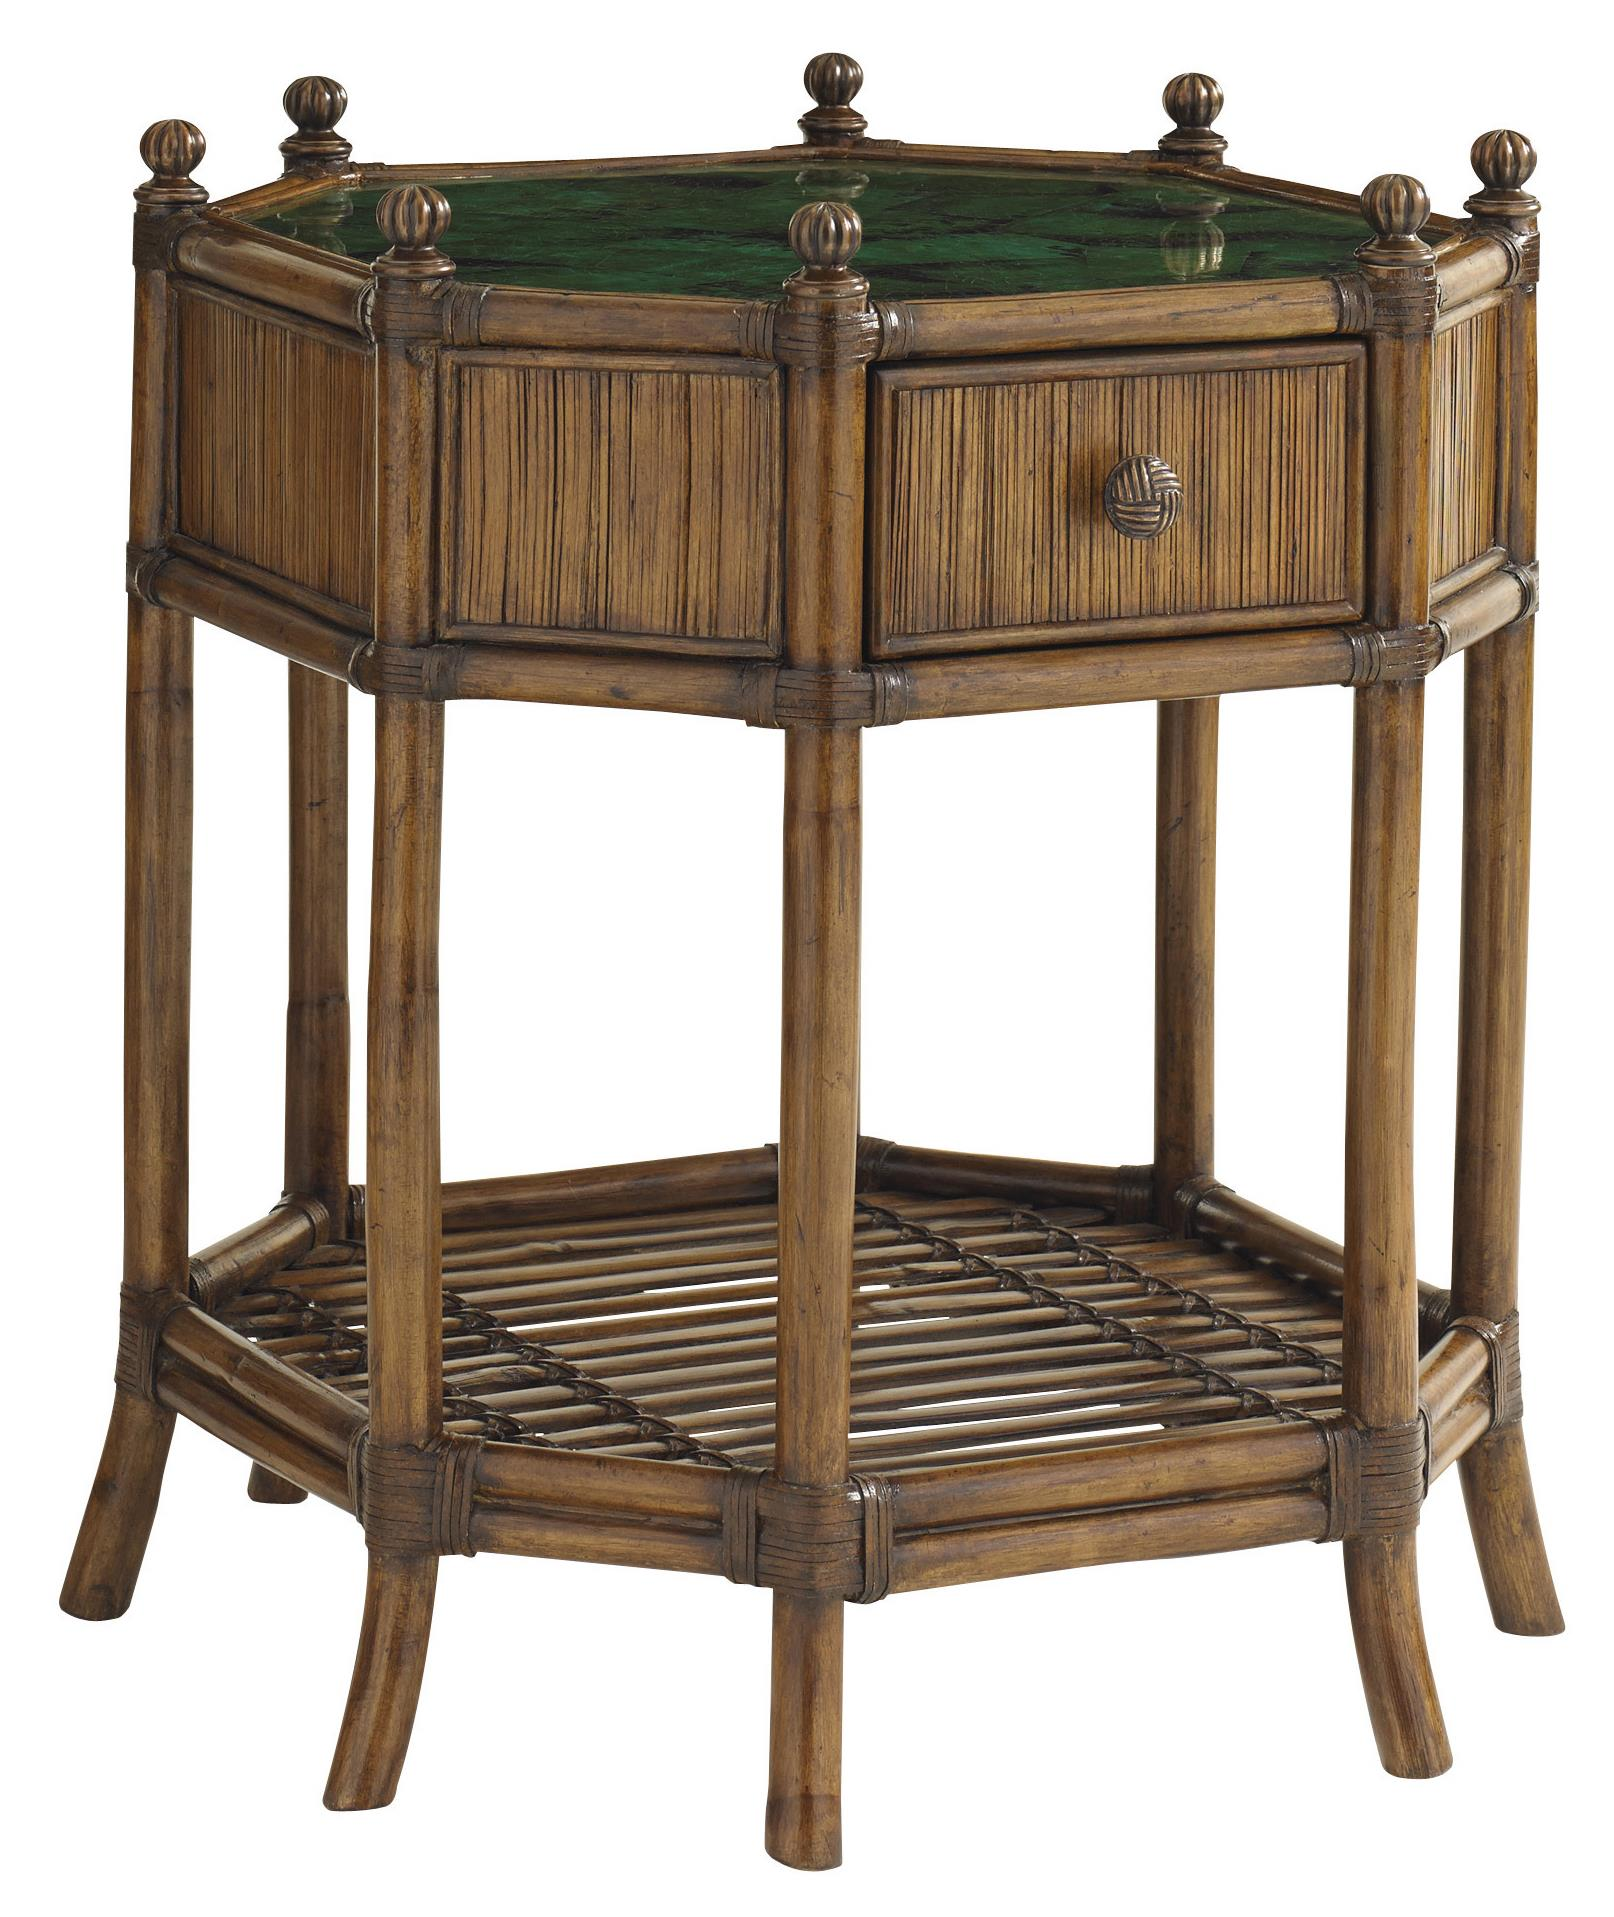 Tommy Bahama Home Bali Hai Flamingo Octagonal End Table - Item Number: 593-951